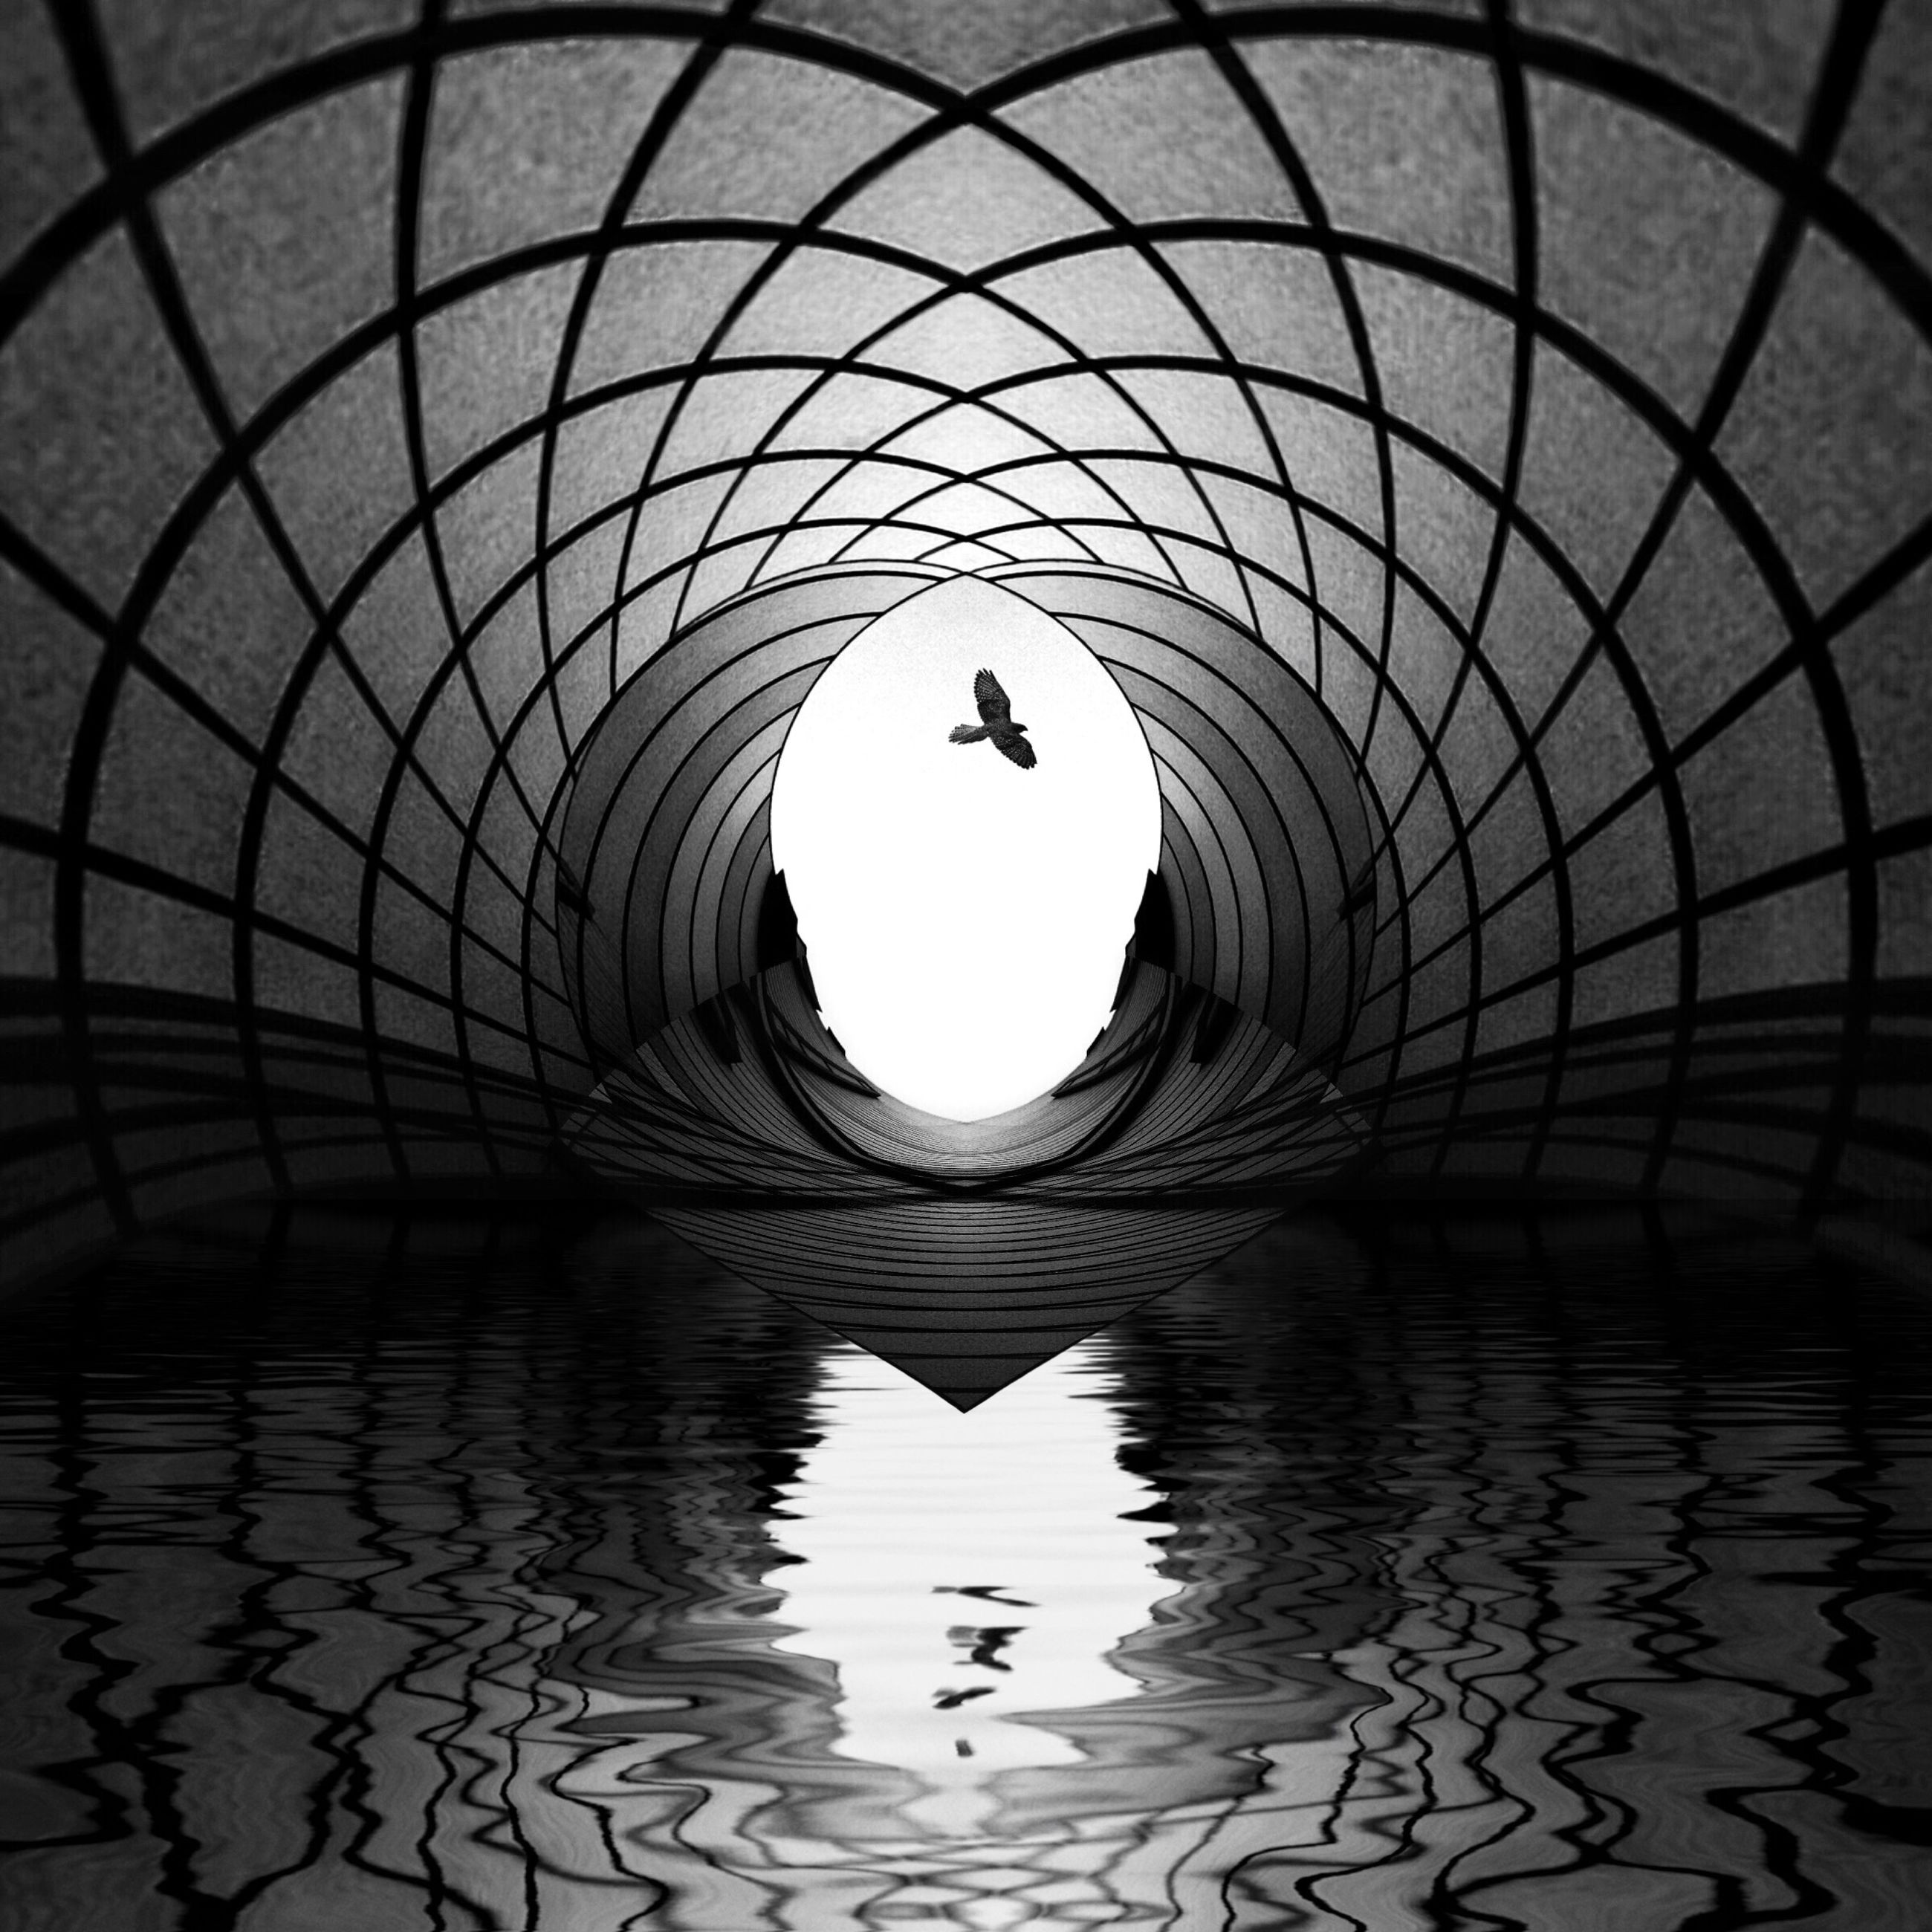 built structure, architecture, arch, circle, water, reflection, indoors, pattern, day, no people, ceiling, geometric shape, waterfront, sky, tunnel, directly below, nature, sunlight, railing